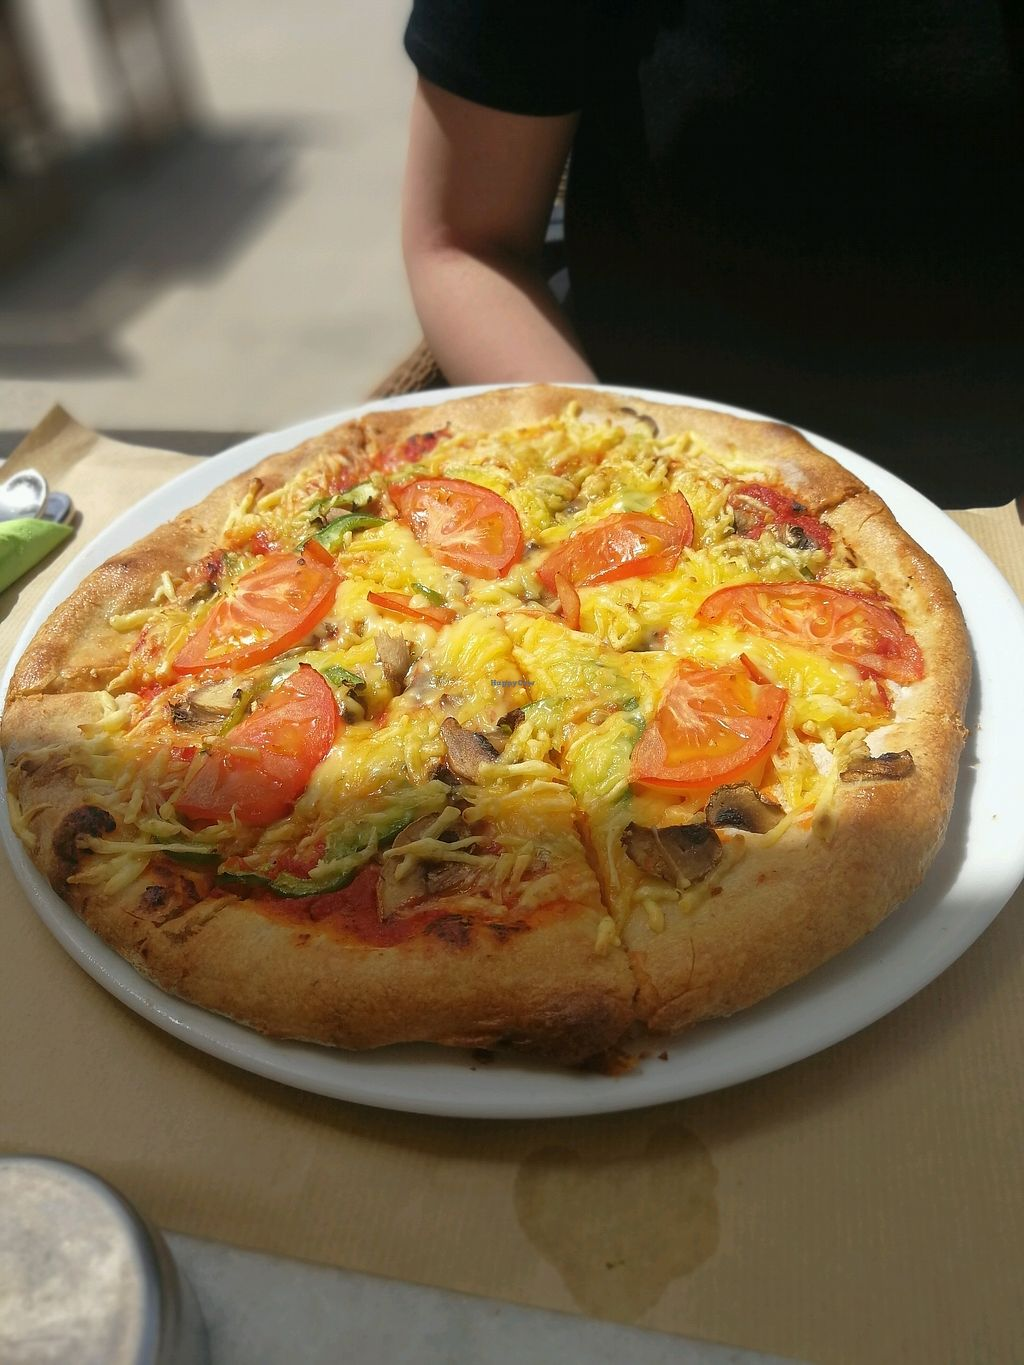 "Photo of V+ S Corner  by <a href=""/members/profile/JohnVanillah"">JohnVanillah</a> <br/>vegetarian pizza with vegan cheese <br/> April 12, 2018  - <a href='/contact/abuse/image/106078/384595'>Report</a>"